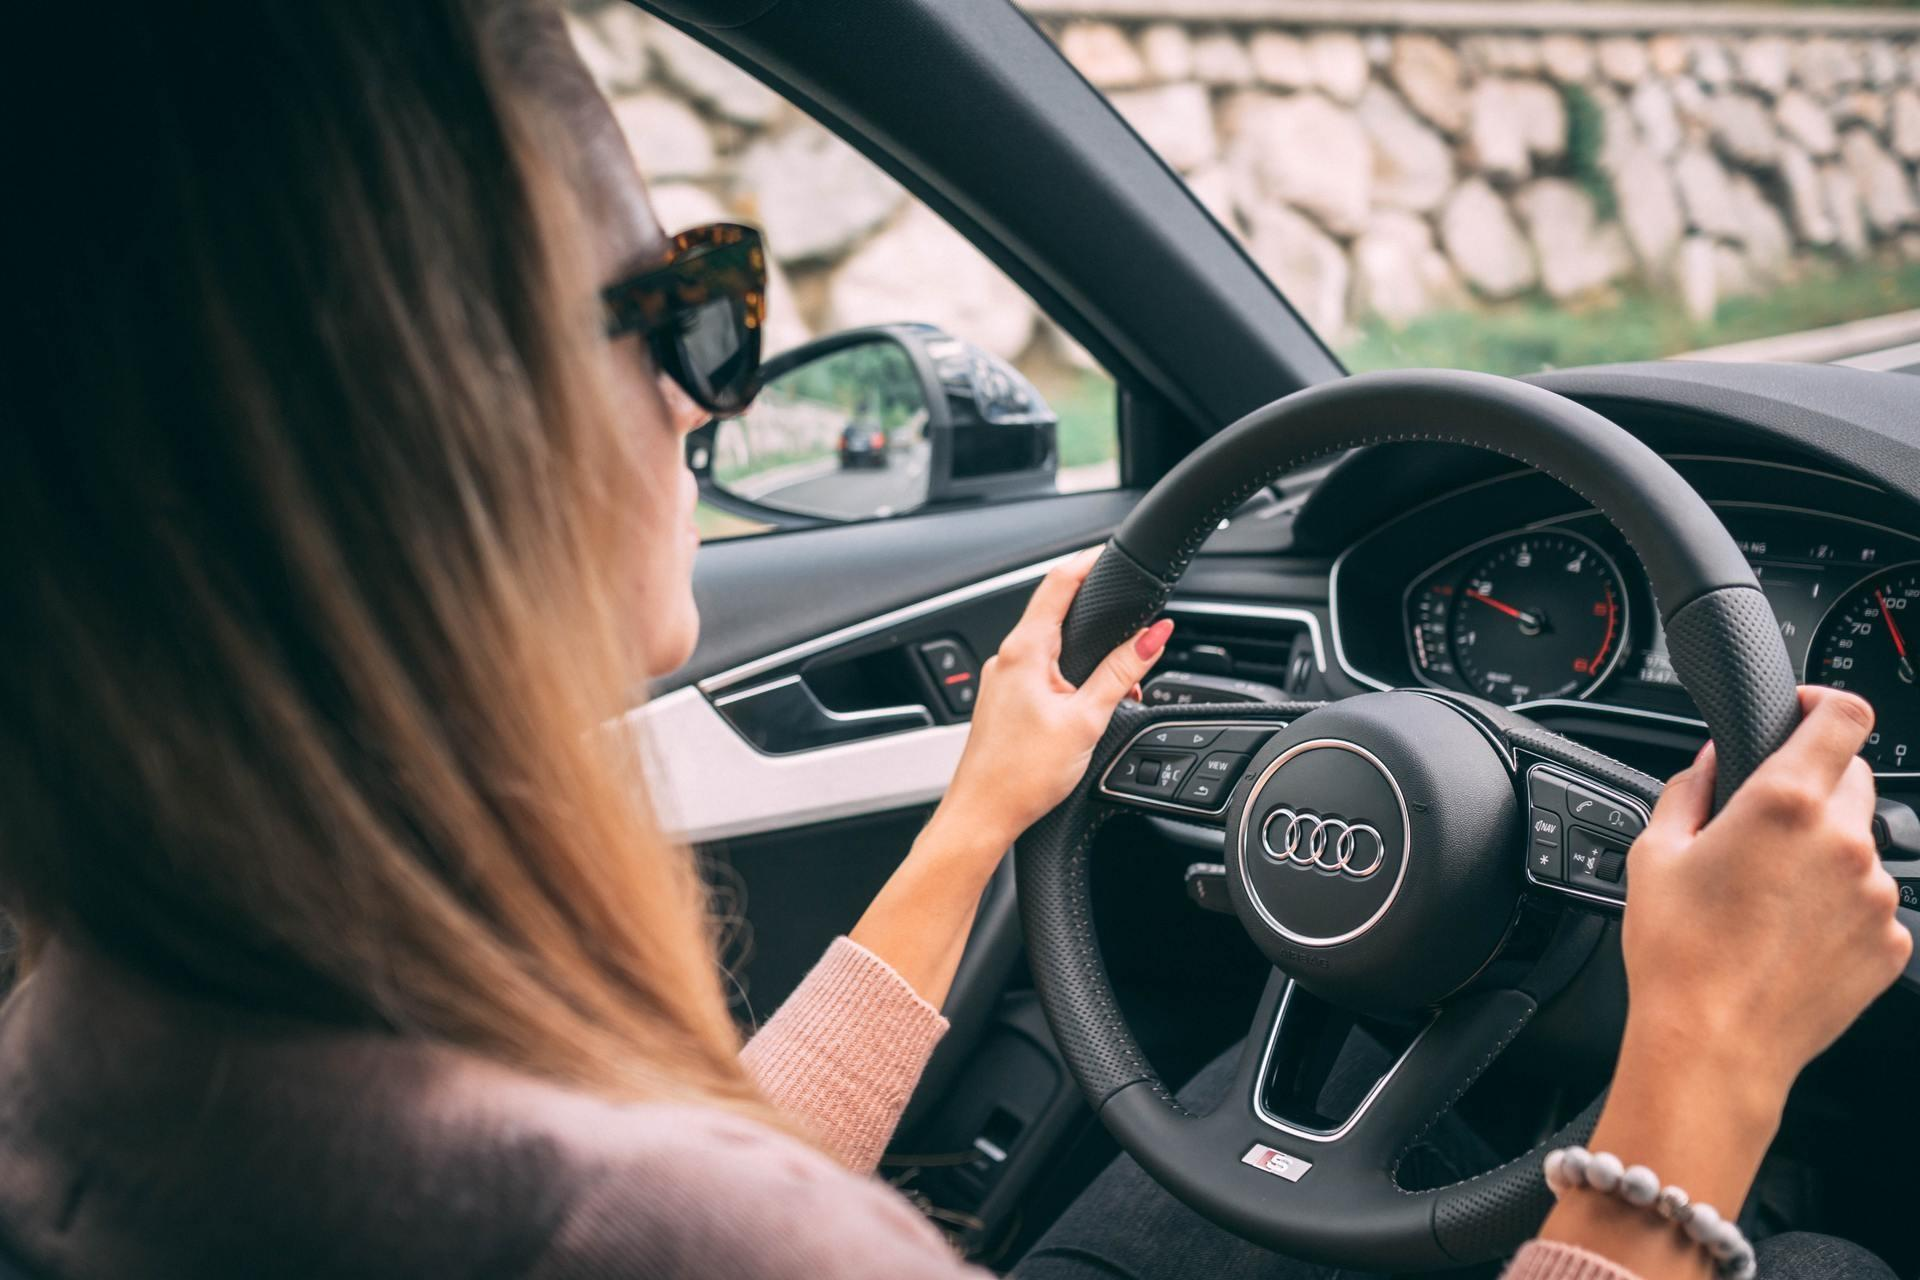 Dizziness While Driving Sometimes a Symptom of Vertical Heterophoria